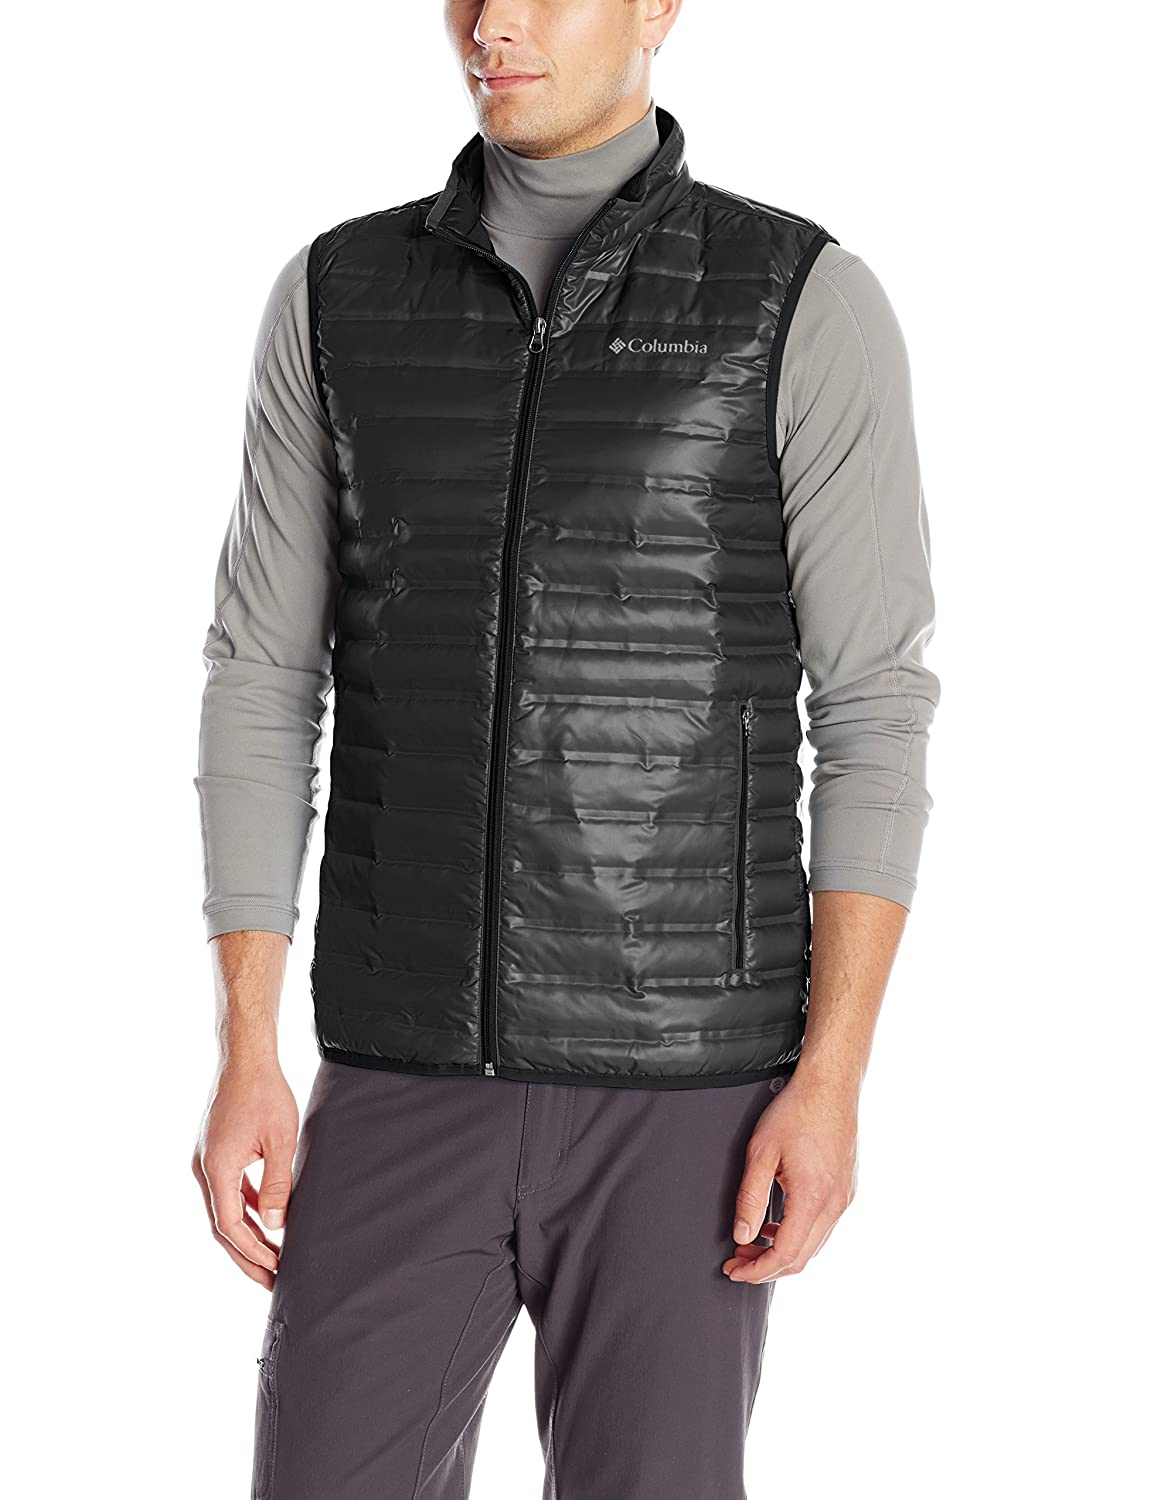 Columbia Flash Forward Down Vest - Chaleco